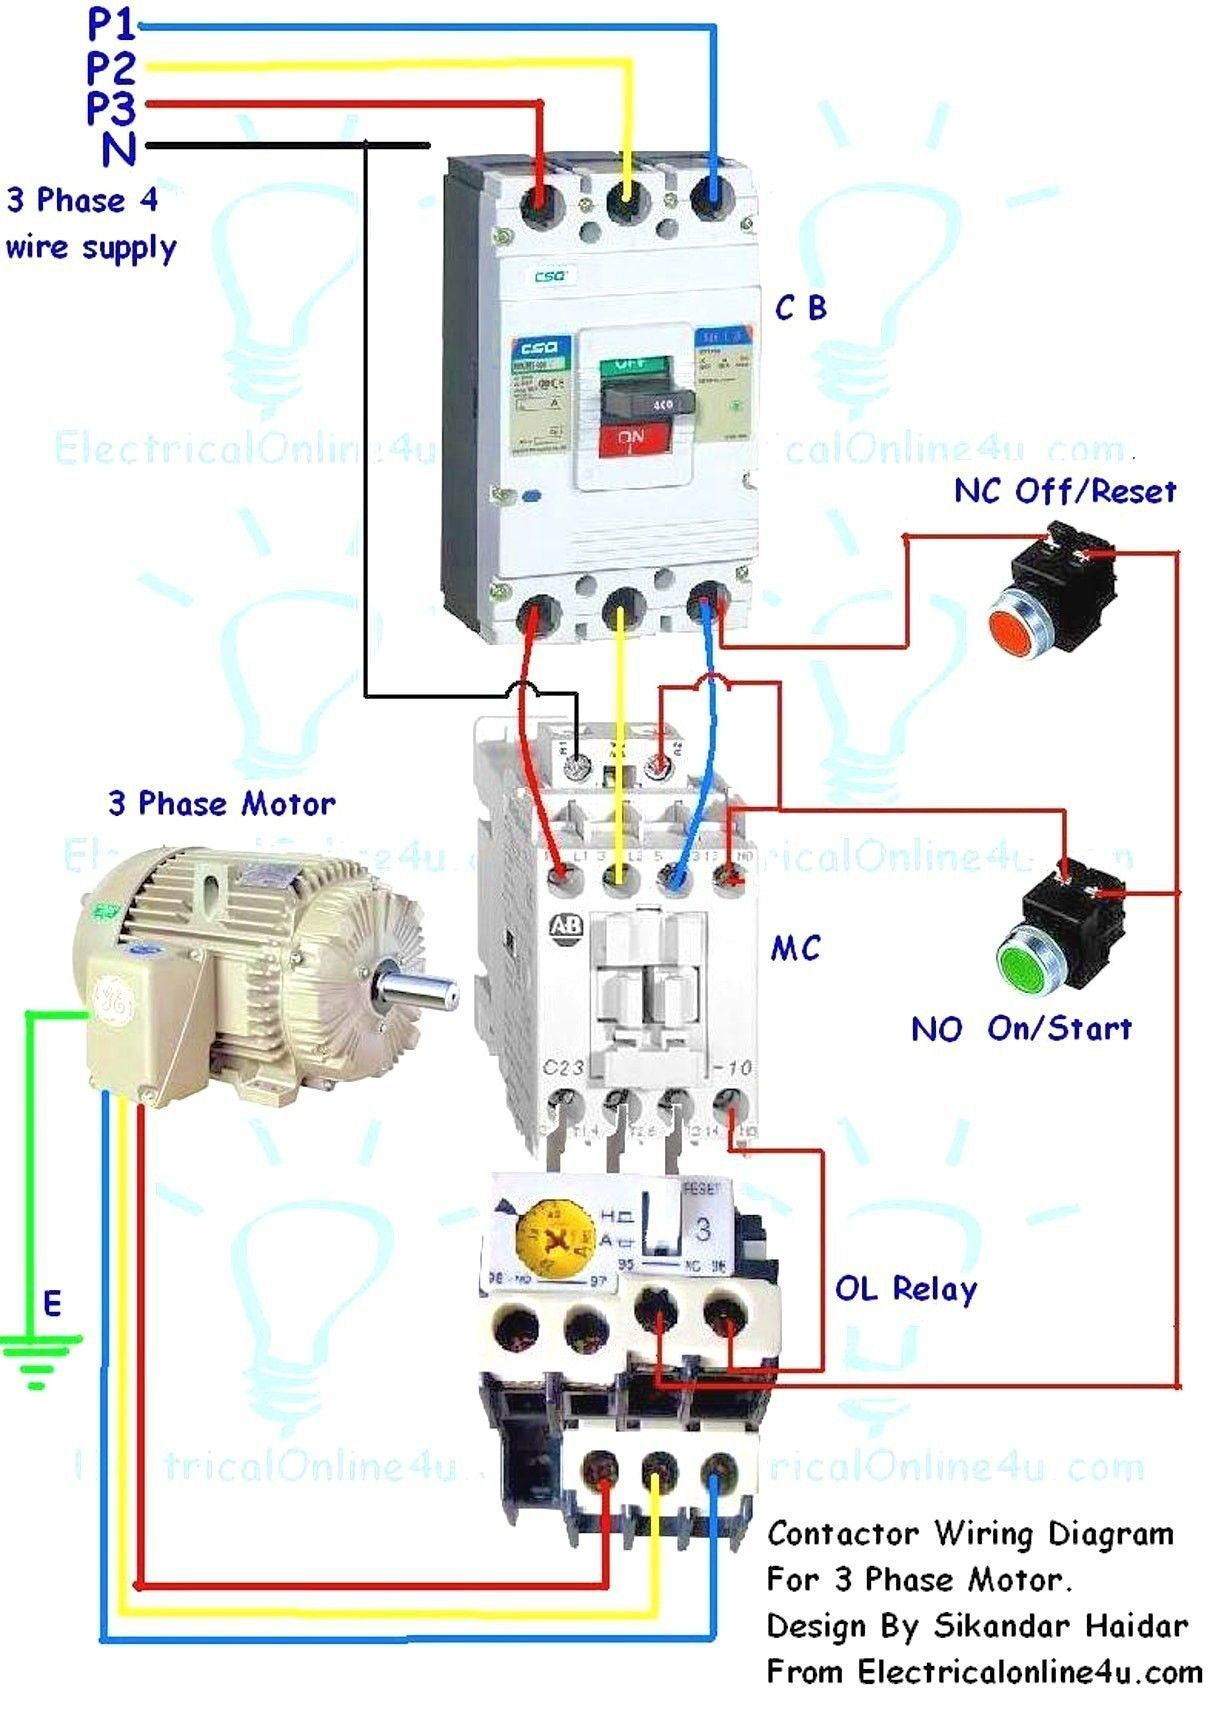 47+ Magnetic contactor wiring diagram information